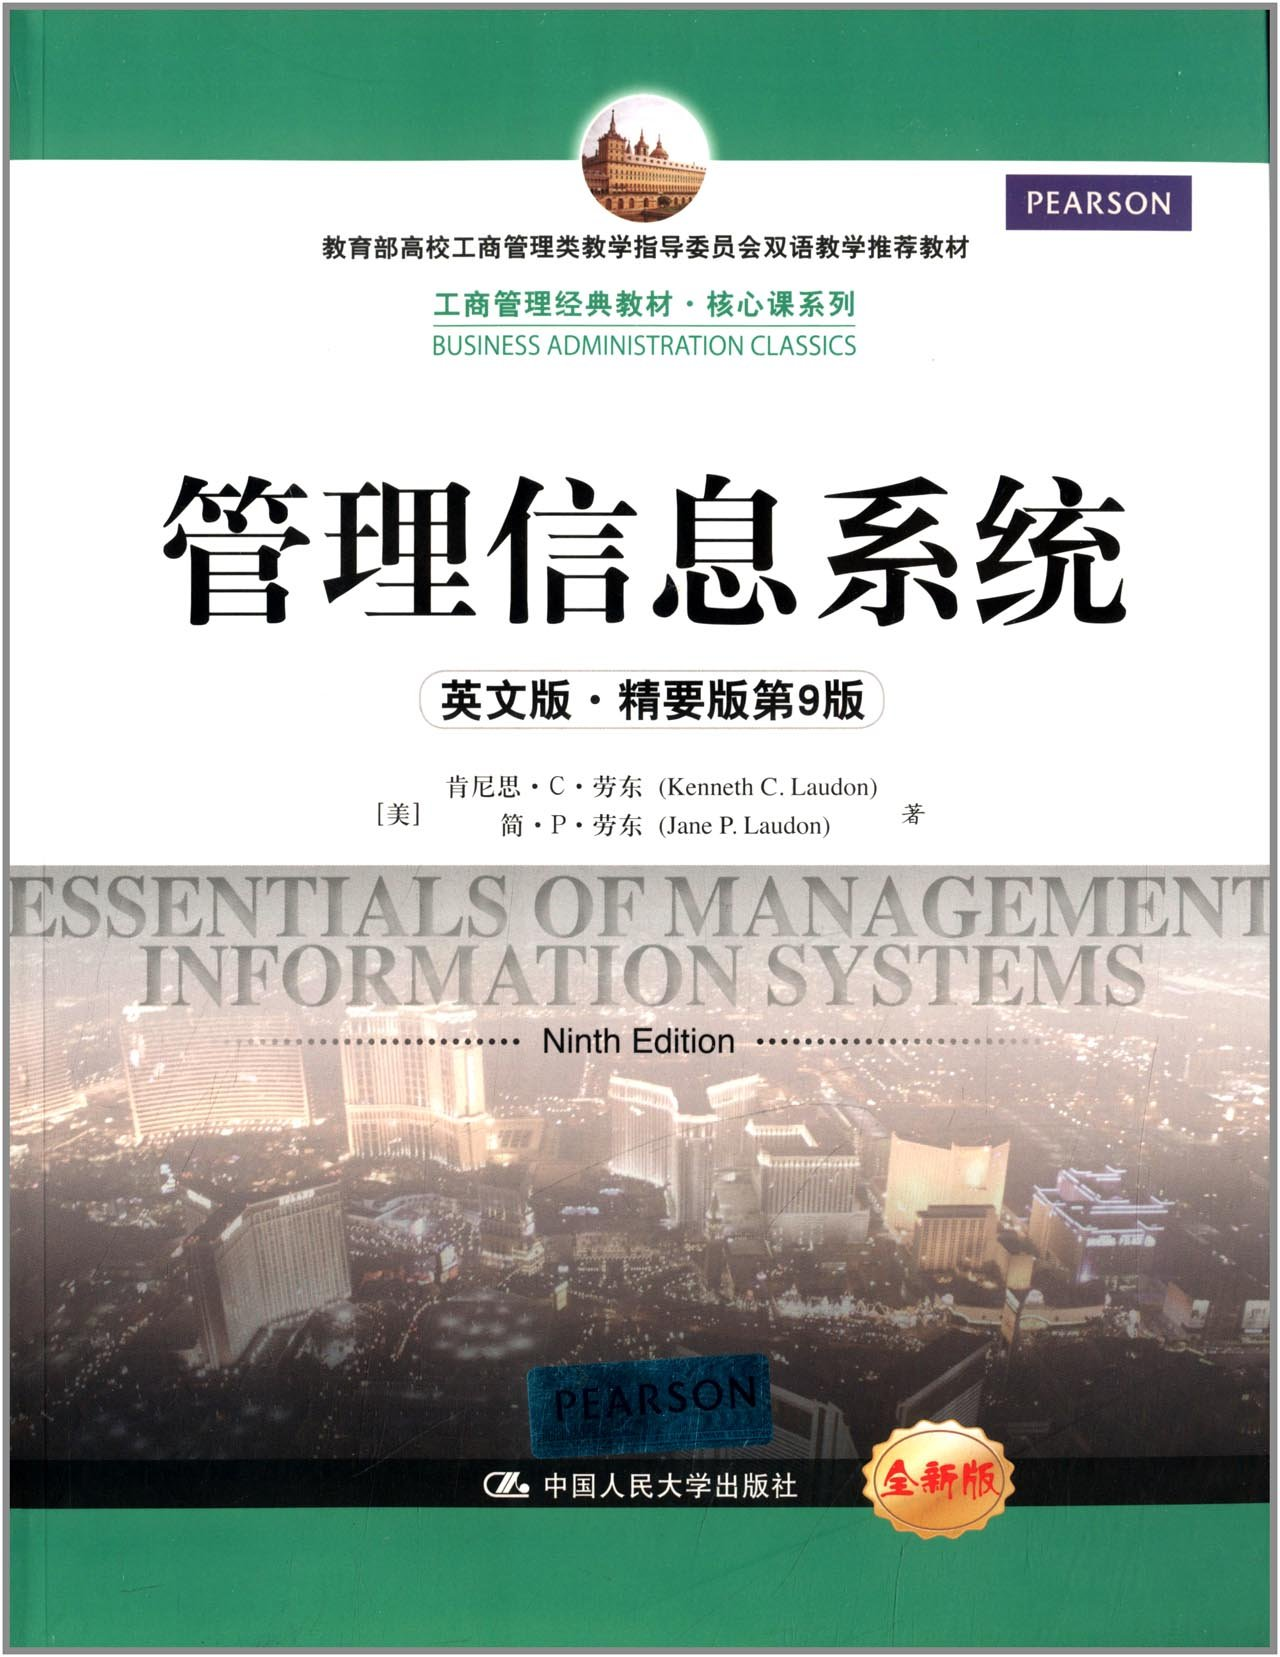 Business Administration classic textbook core courses: Management Information System (English version) (Essentials Edition) (9th Edition)(Chinese Edition) pdf